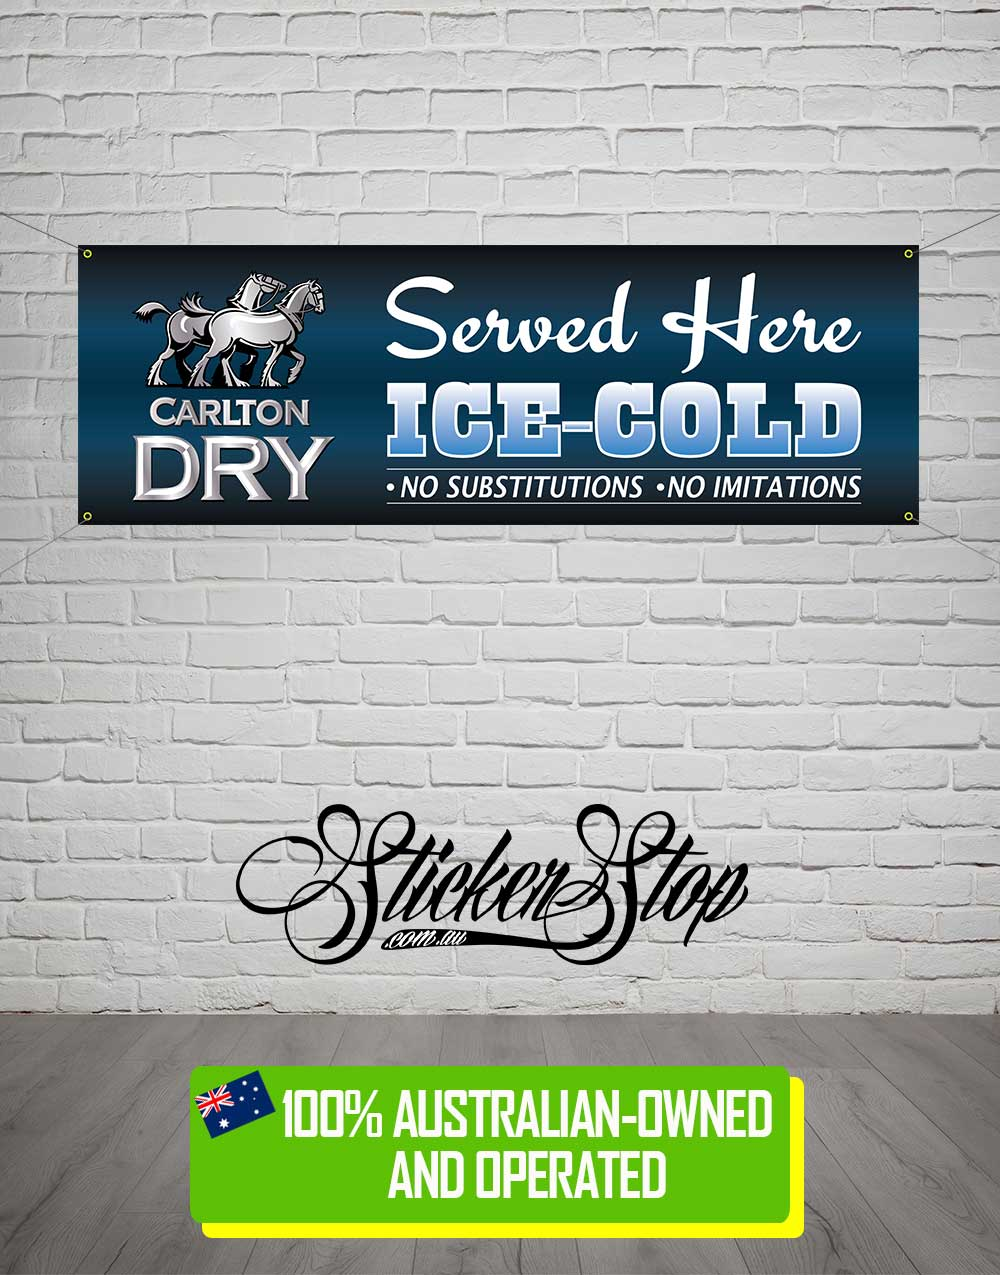 Carlton Dry Banner for Mancave, Garage, Shed or Workshop